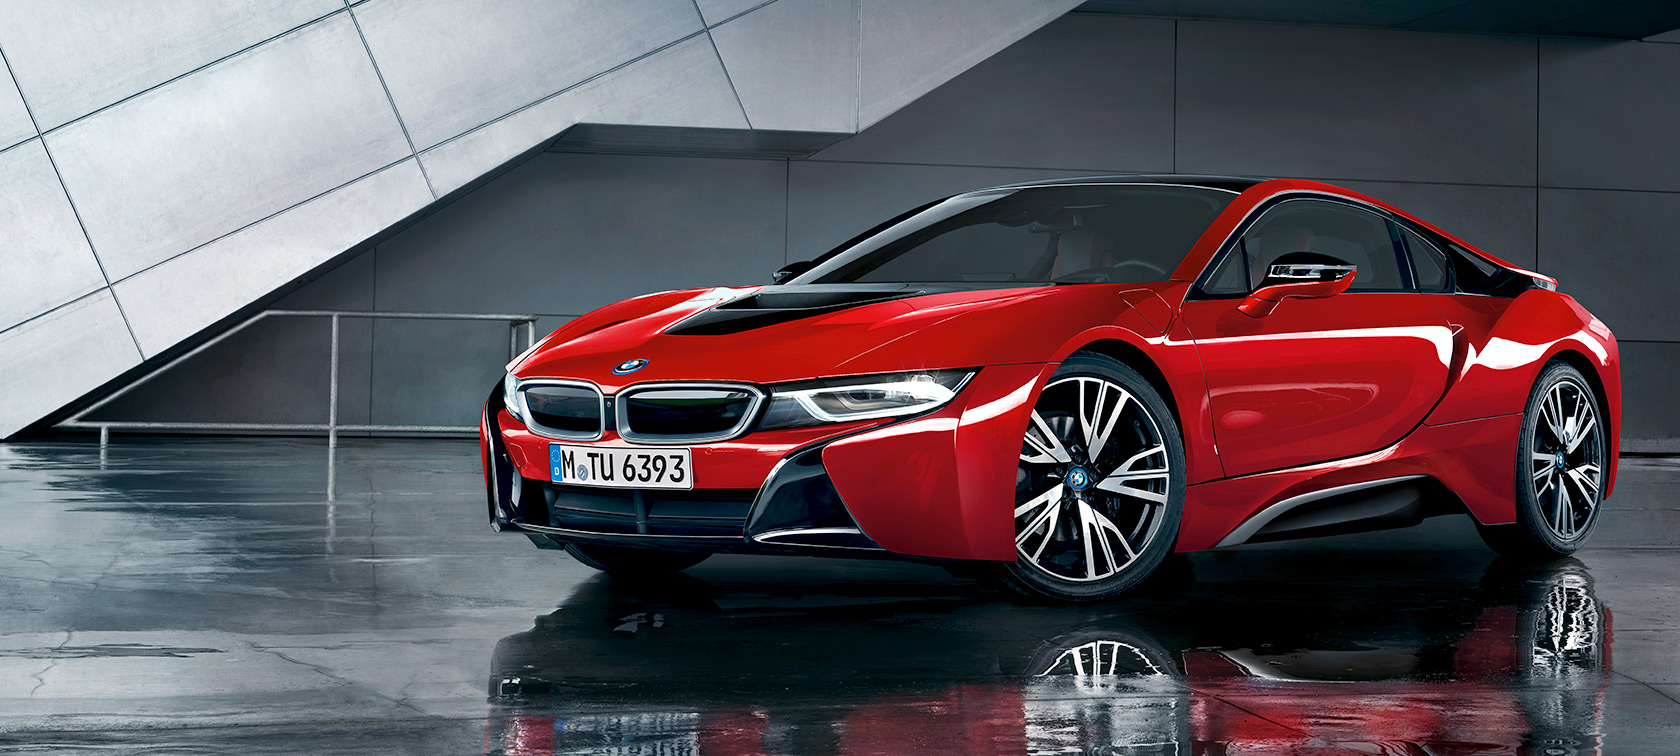 The BMW i8 Protonic Red Edition